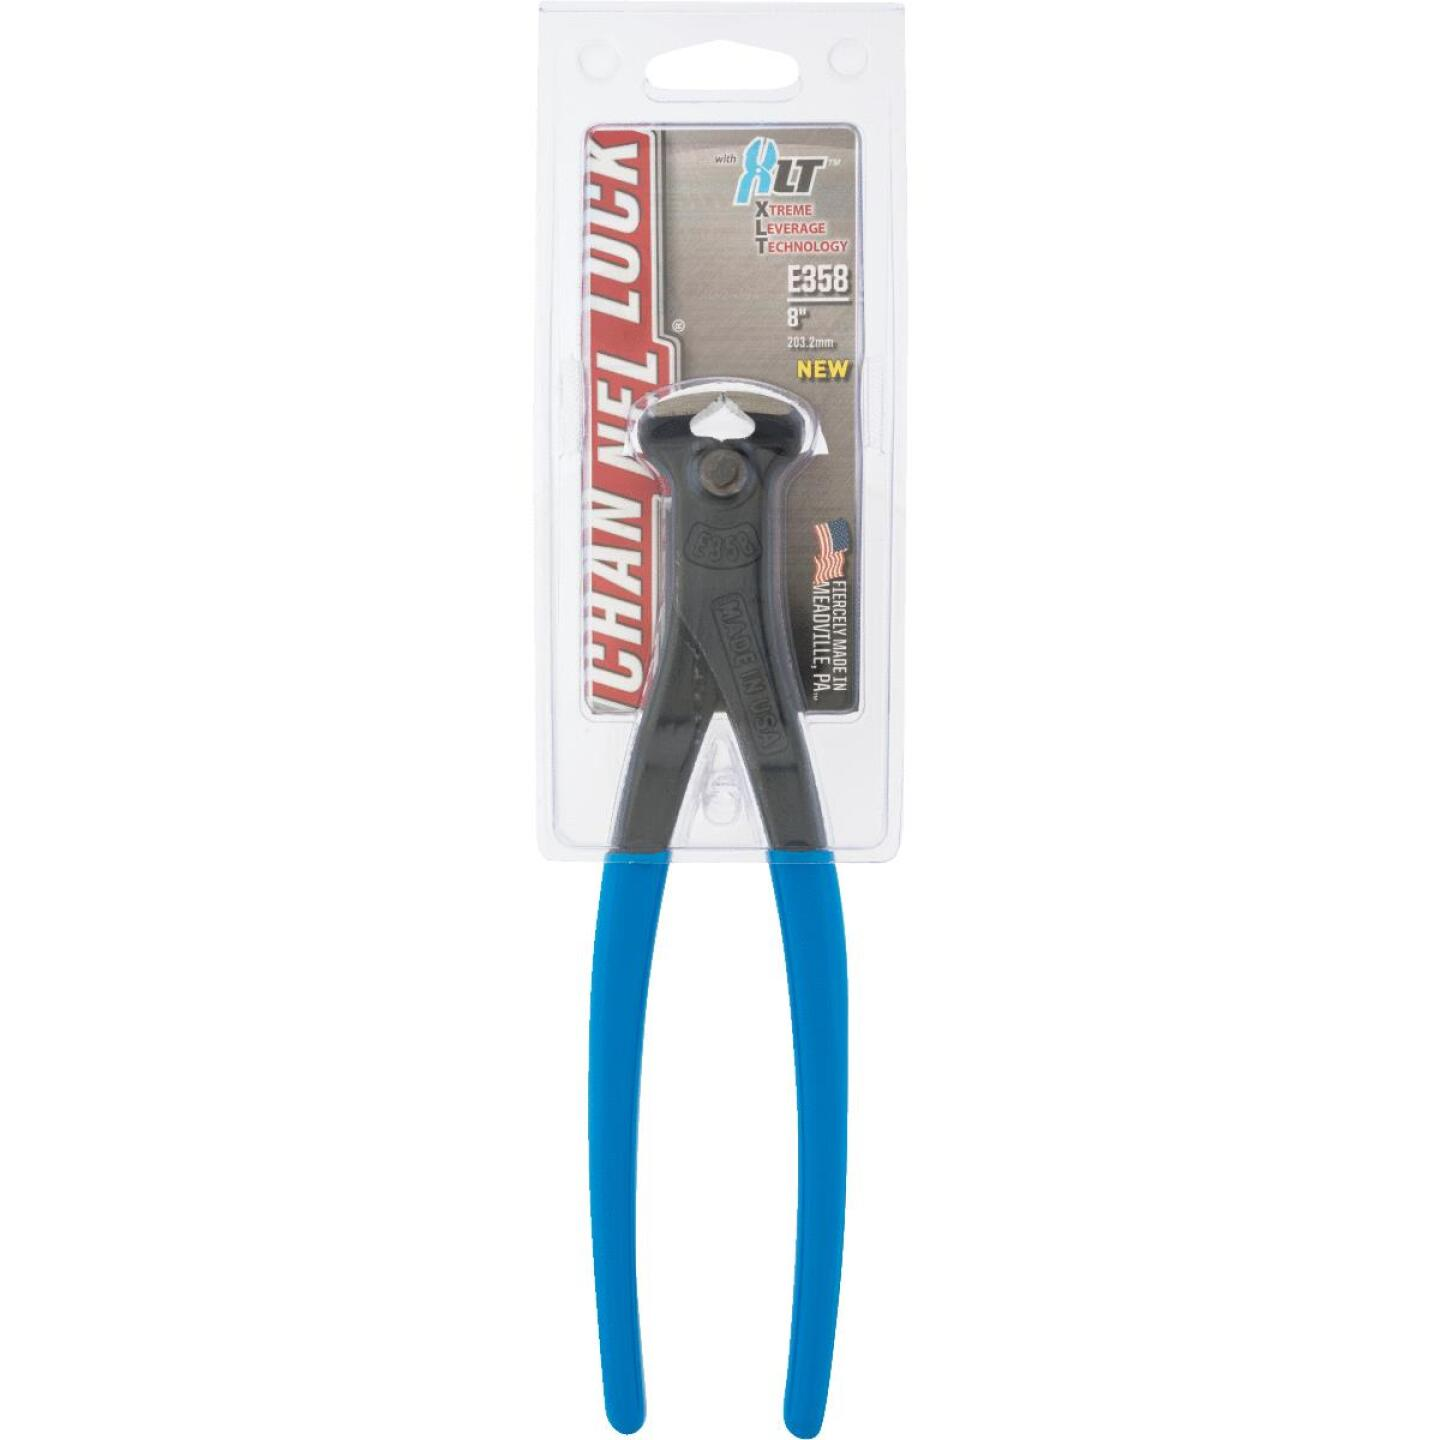 Channellock 8 In. E Series High Leverage Cutting Nipper Image 2